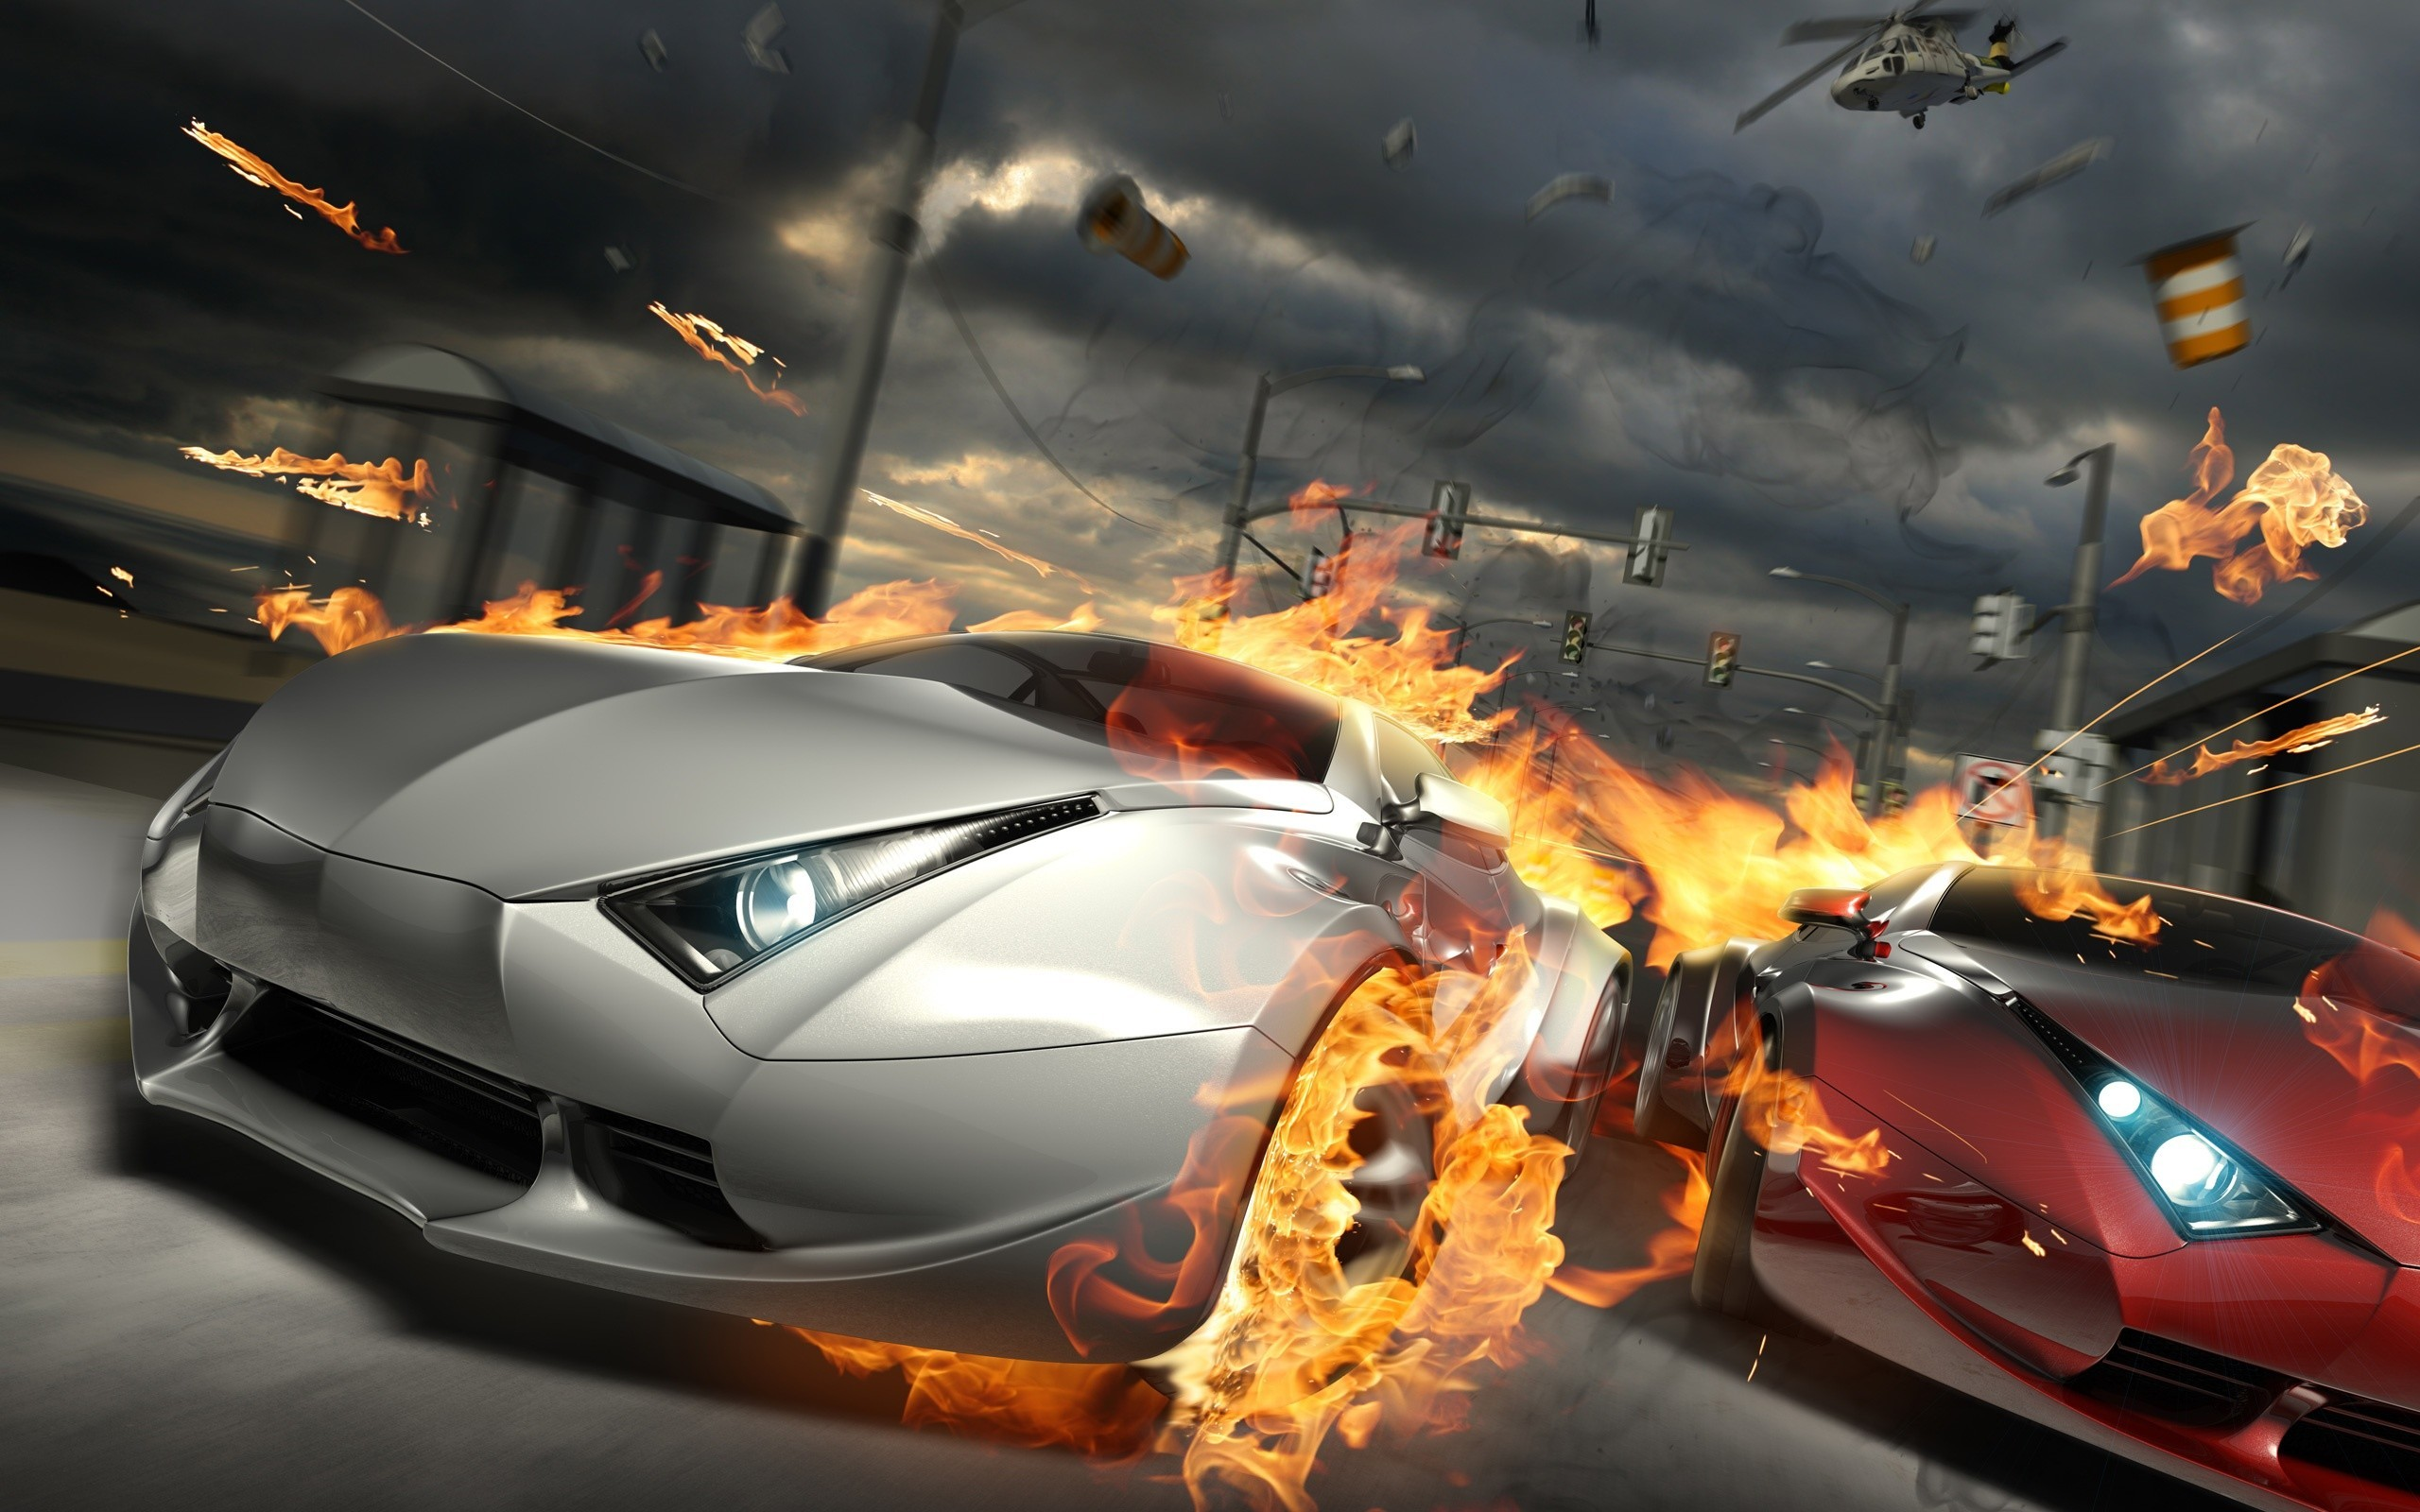 Res: 2560x1600, widescreen-street-racing-cars-wallpapers--WTG20062890